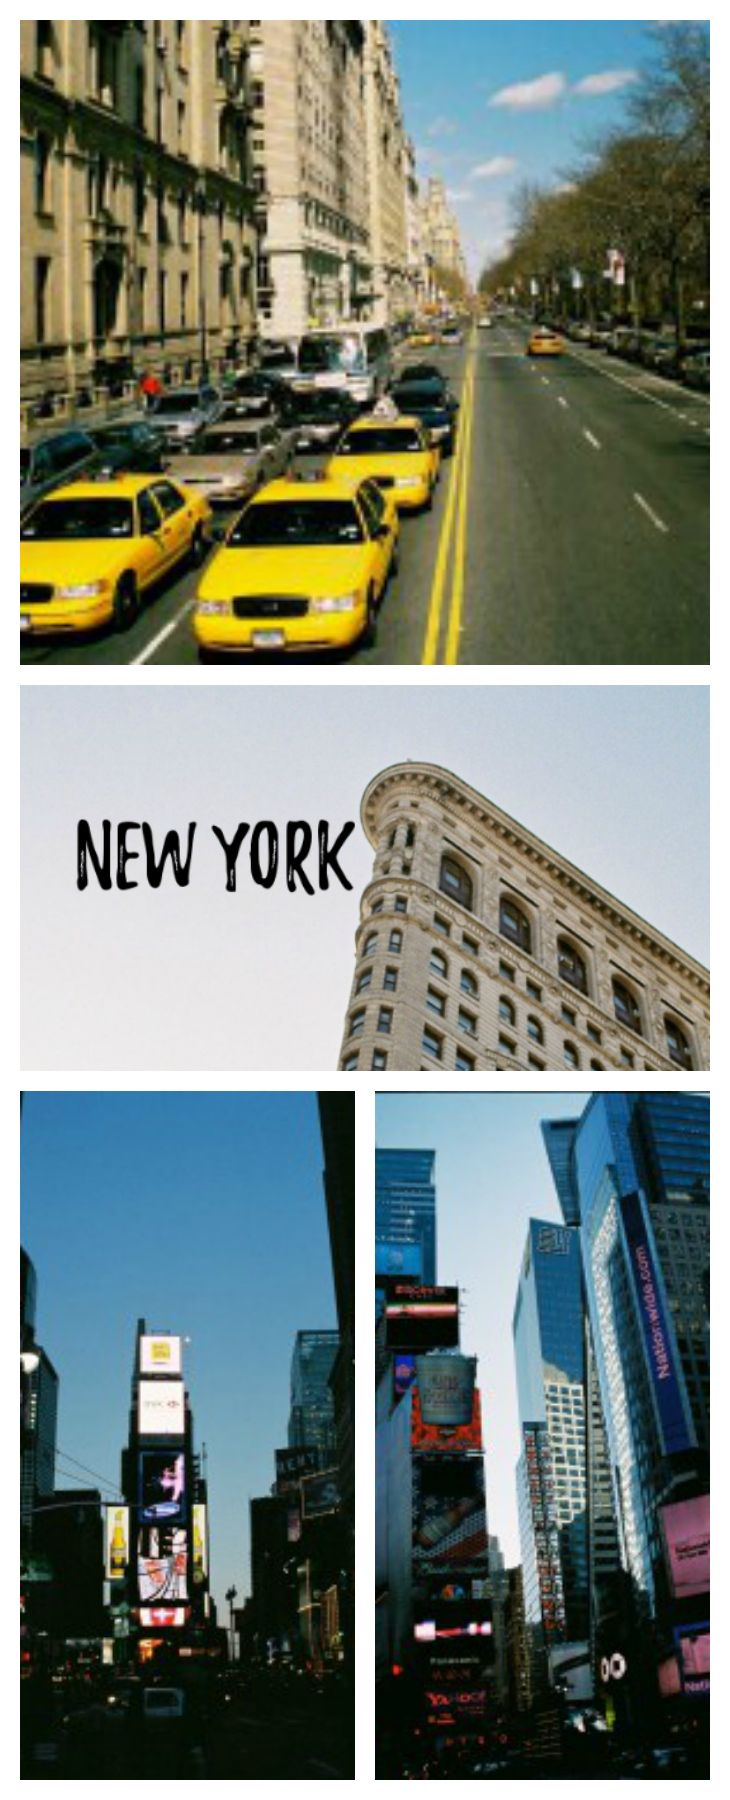 Visiting the big apple? Here's an account of my adventures in New York!